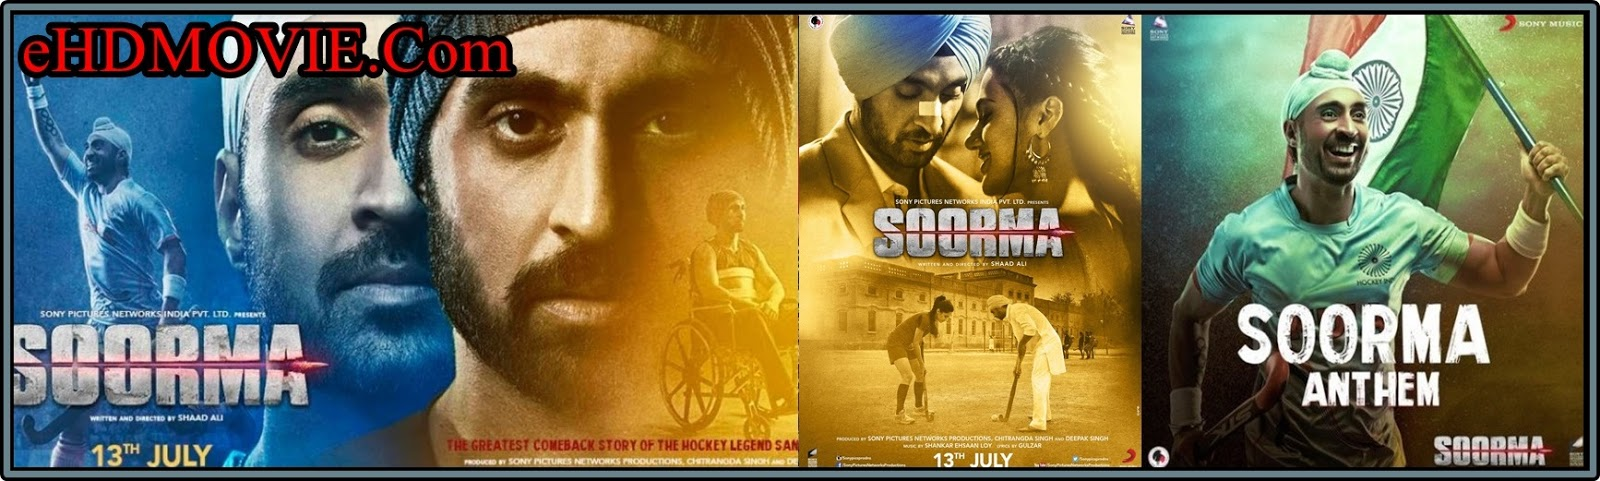 Soorma 2018 Full Movie Hindi 1080p - 720p - HEVC - 480p ORG WEB-DL 400MB - 650MB - 1.4GB - 2GB ESubs Free Download